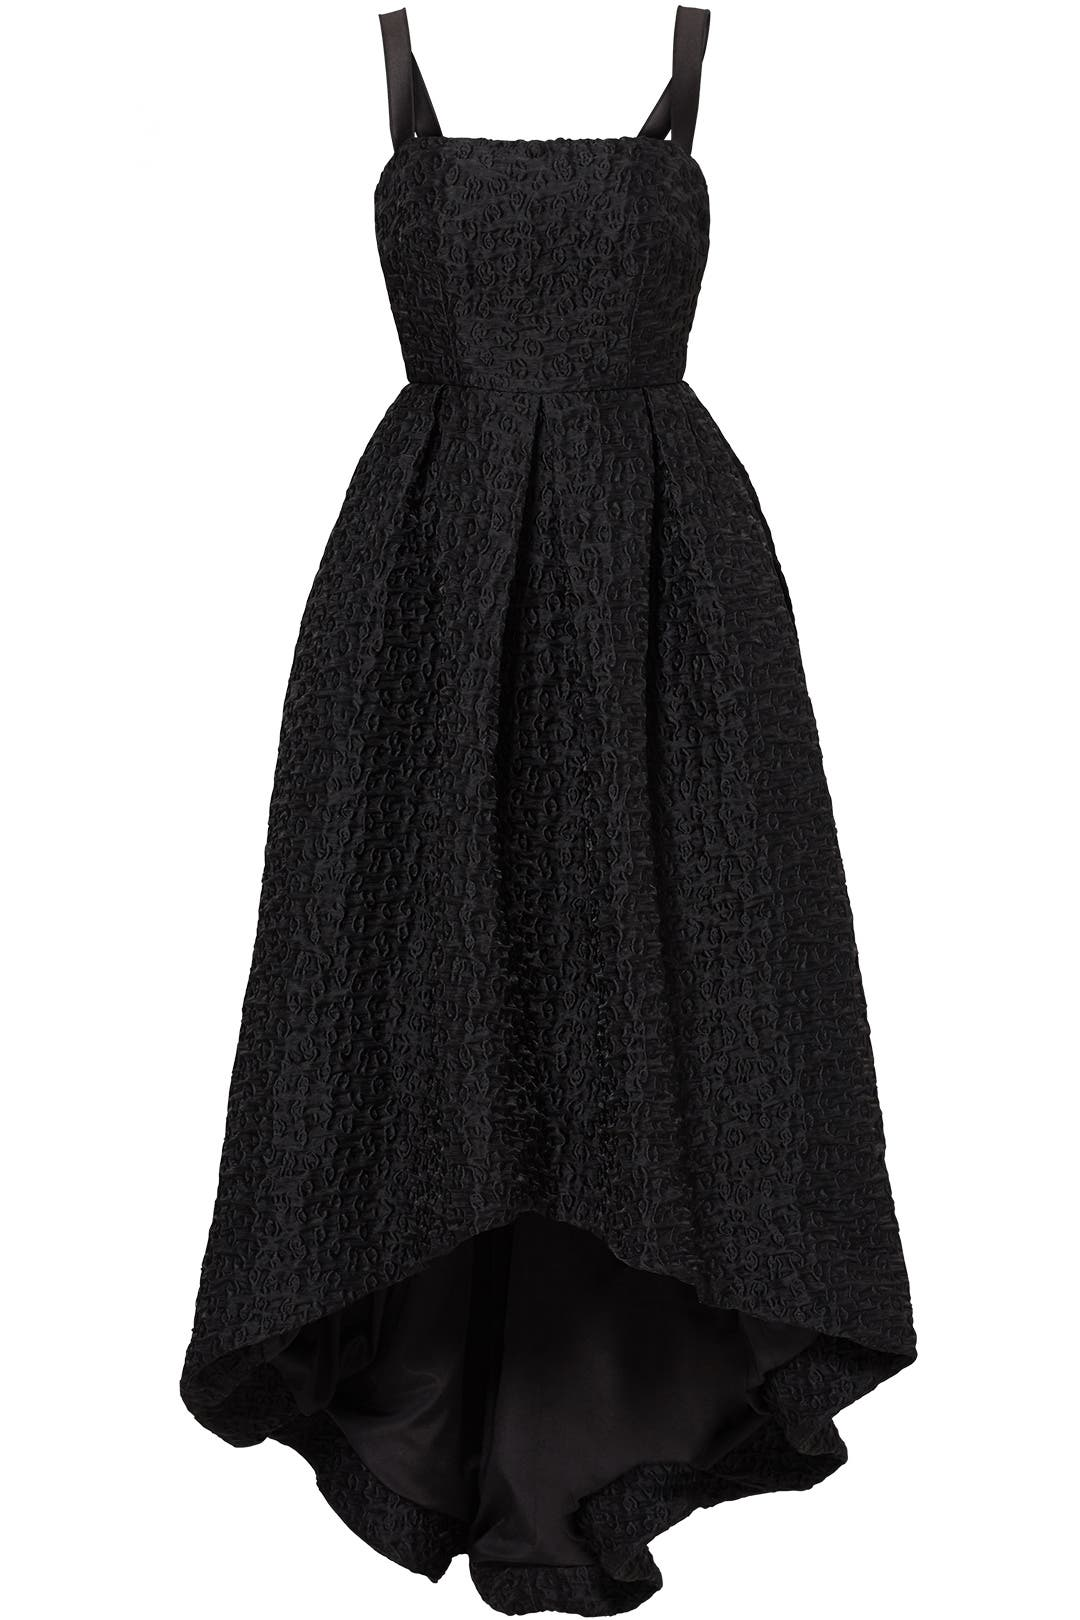 Black Crinkle High-Low Gown by Cynthia Rowley for $120 - $150 | Rent ...